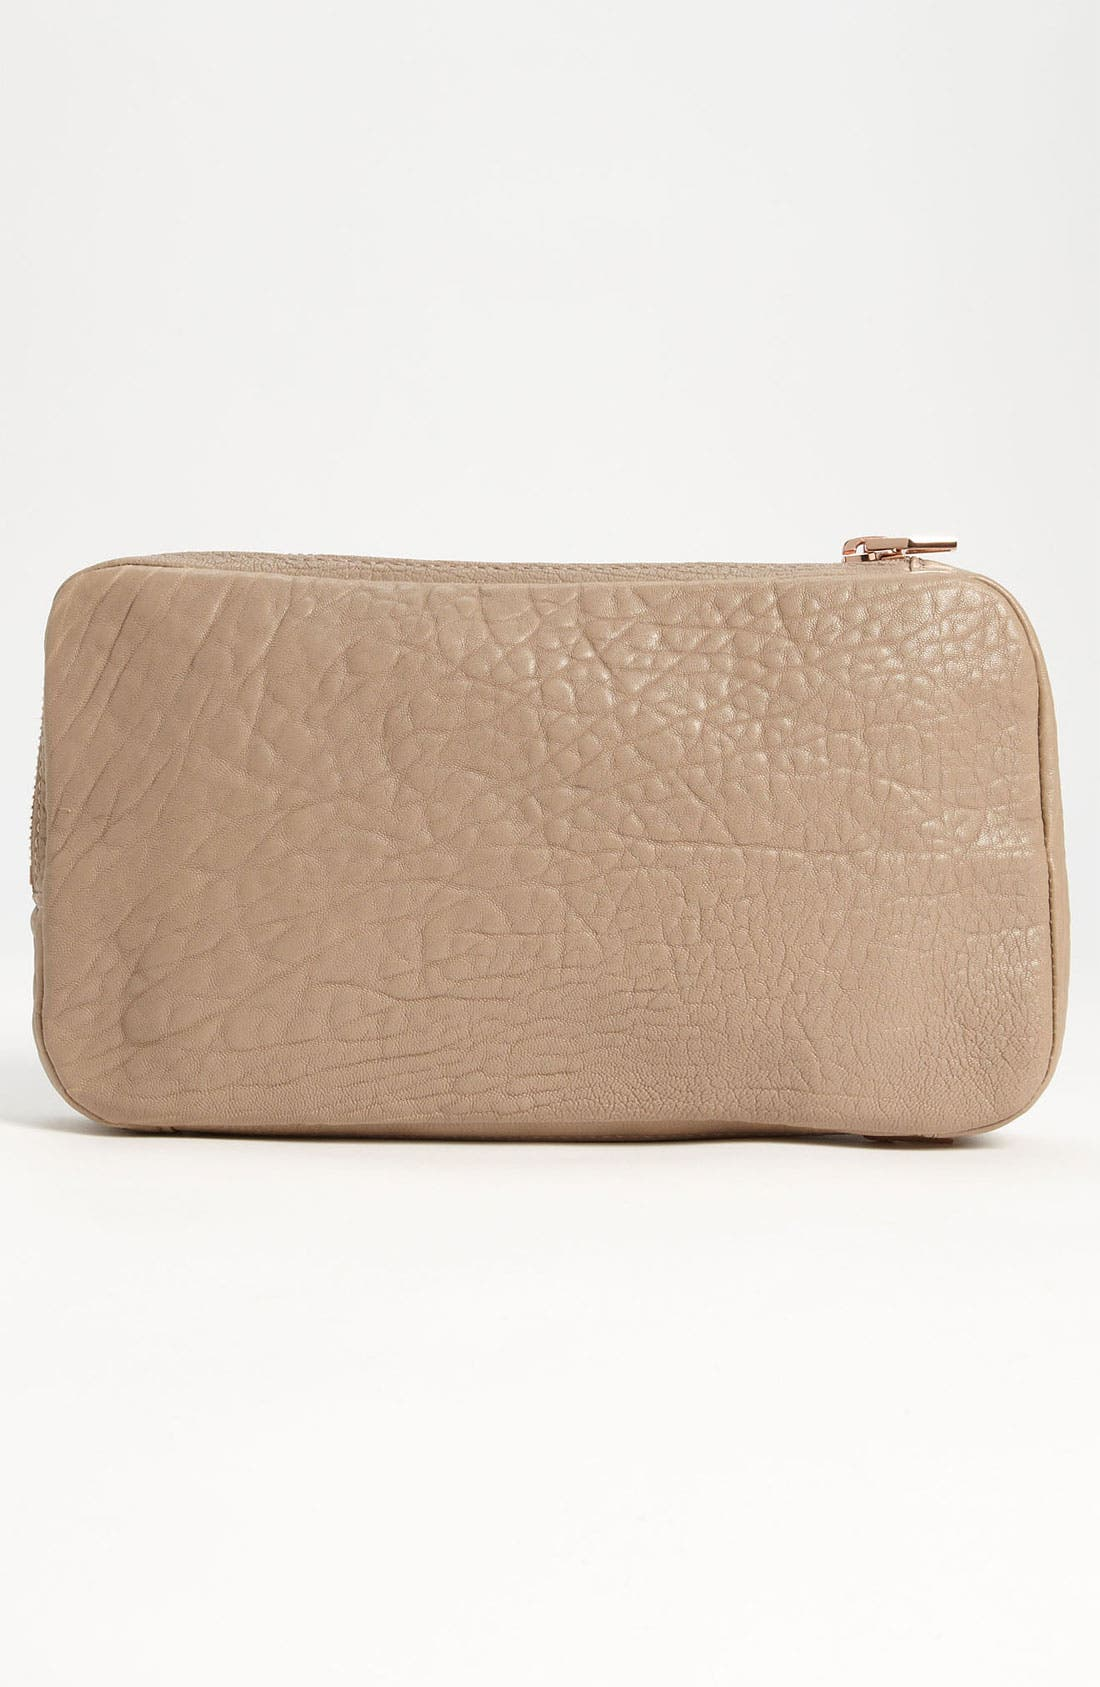 Alternate Image 4  - Alexander Wang 'Dumbo' Leather Clutch